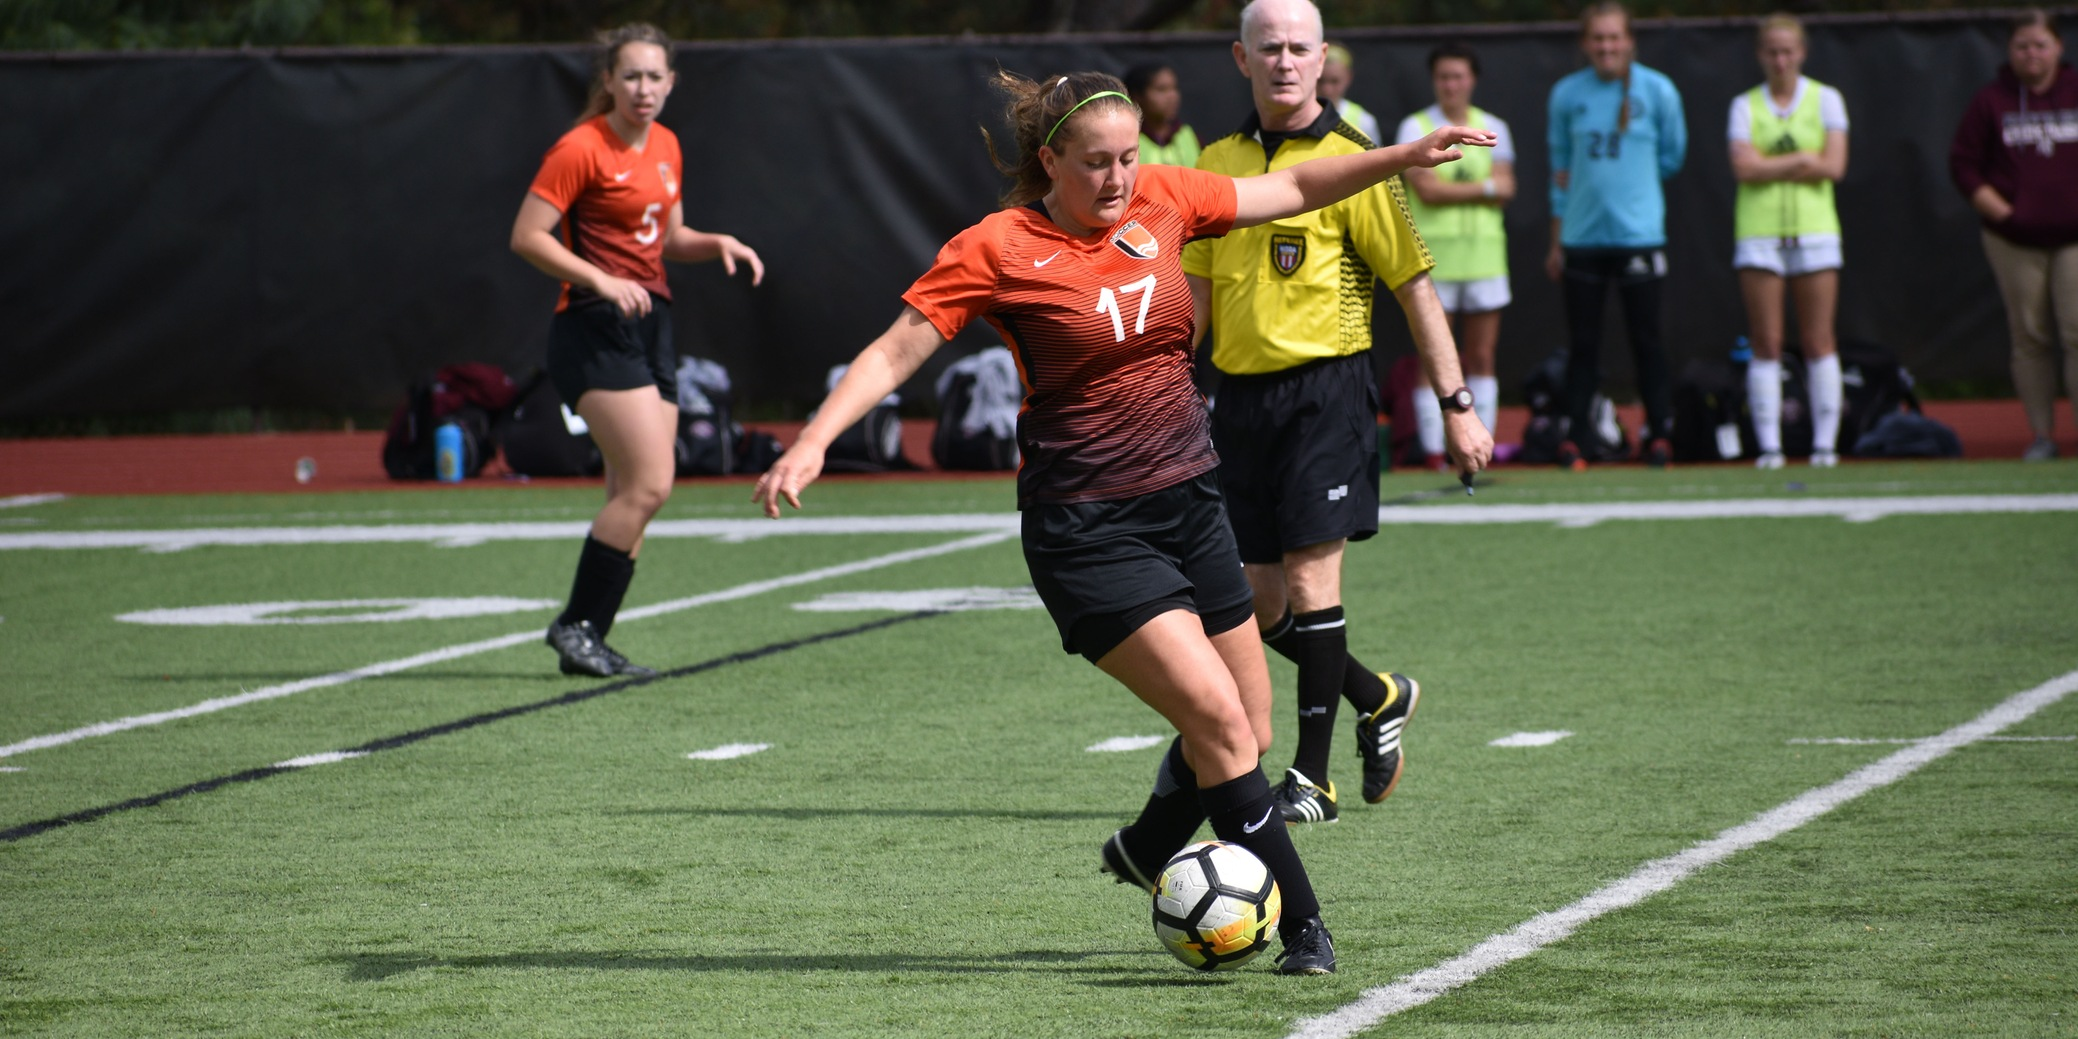 Pioneers get first NWC win off of penalty kick by Hennes